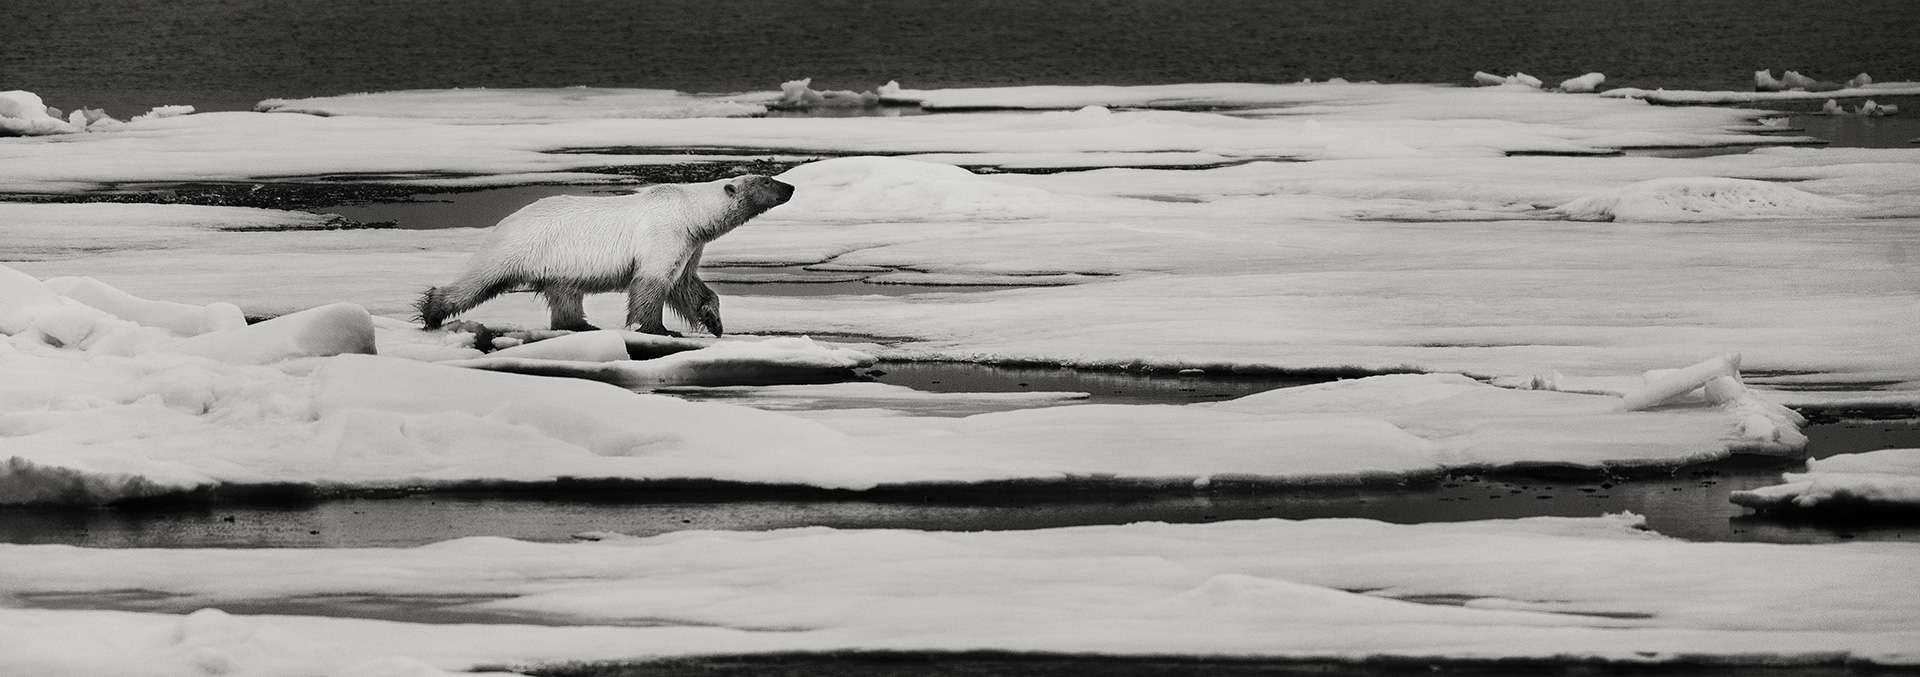 Gilles Martin's photograph : polar bear from Svalbard, Struggle for life